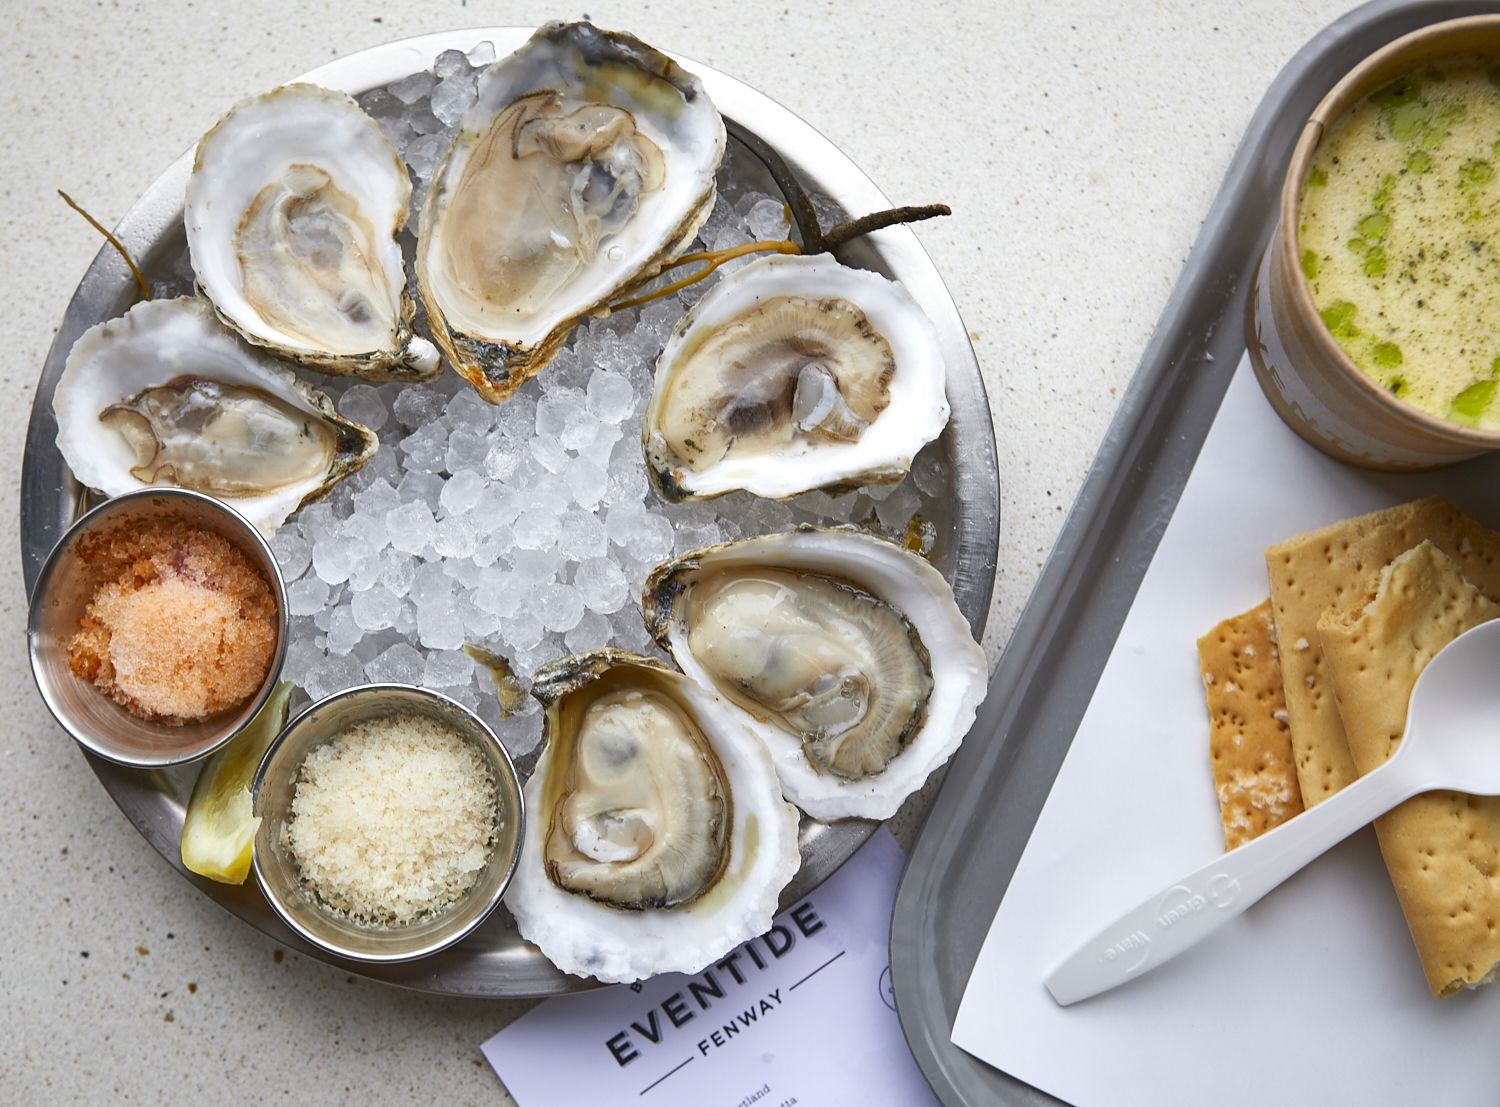 Take Your Mother Out for Some Oysters This Weekend